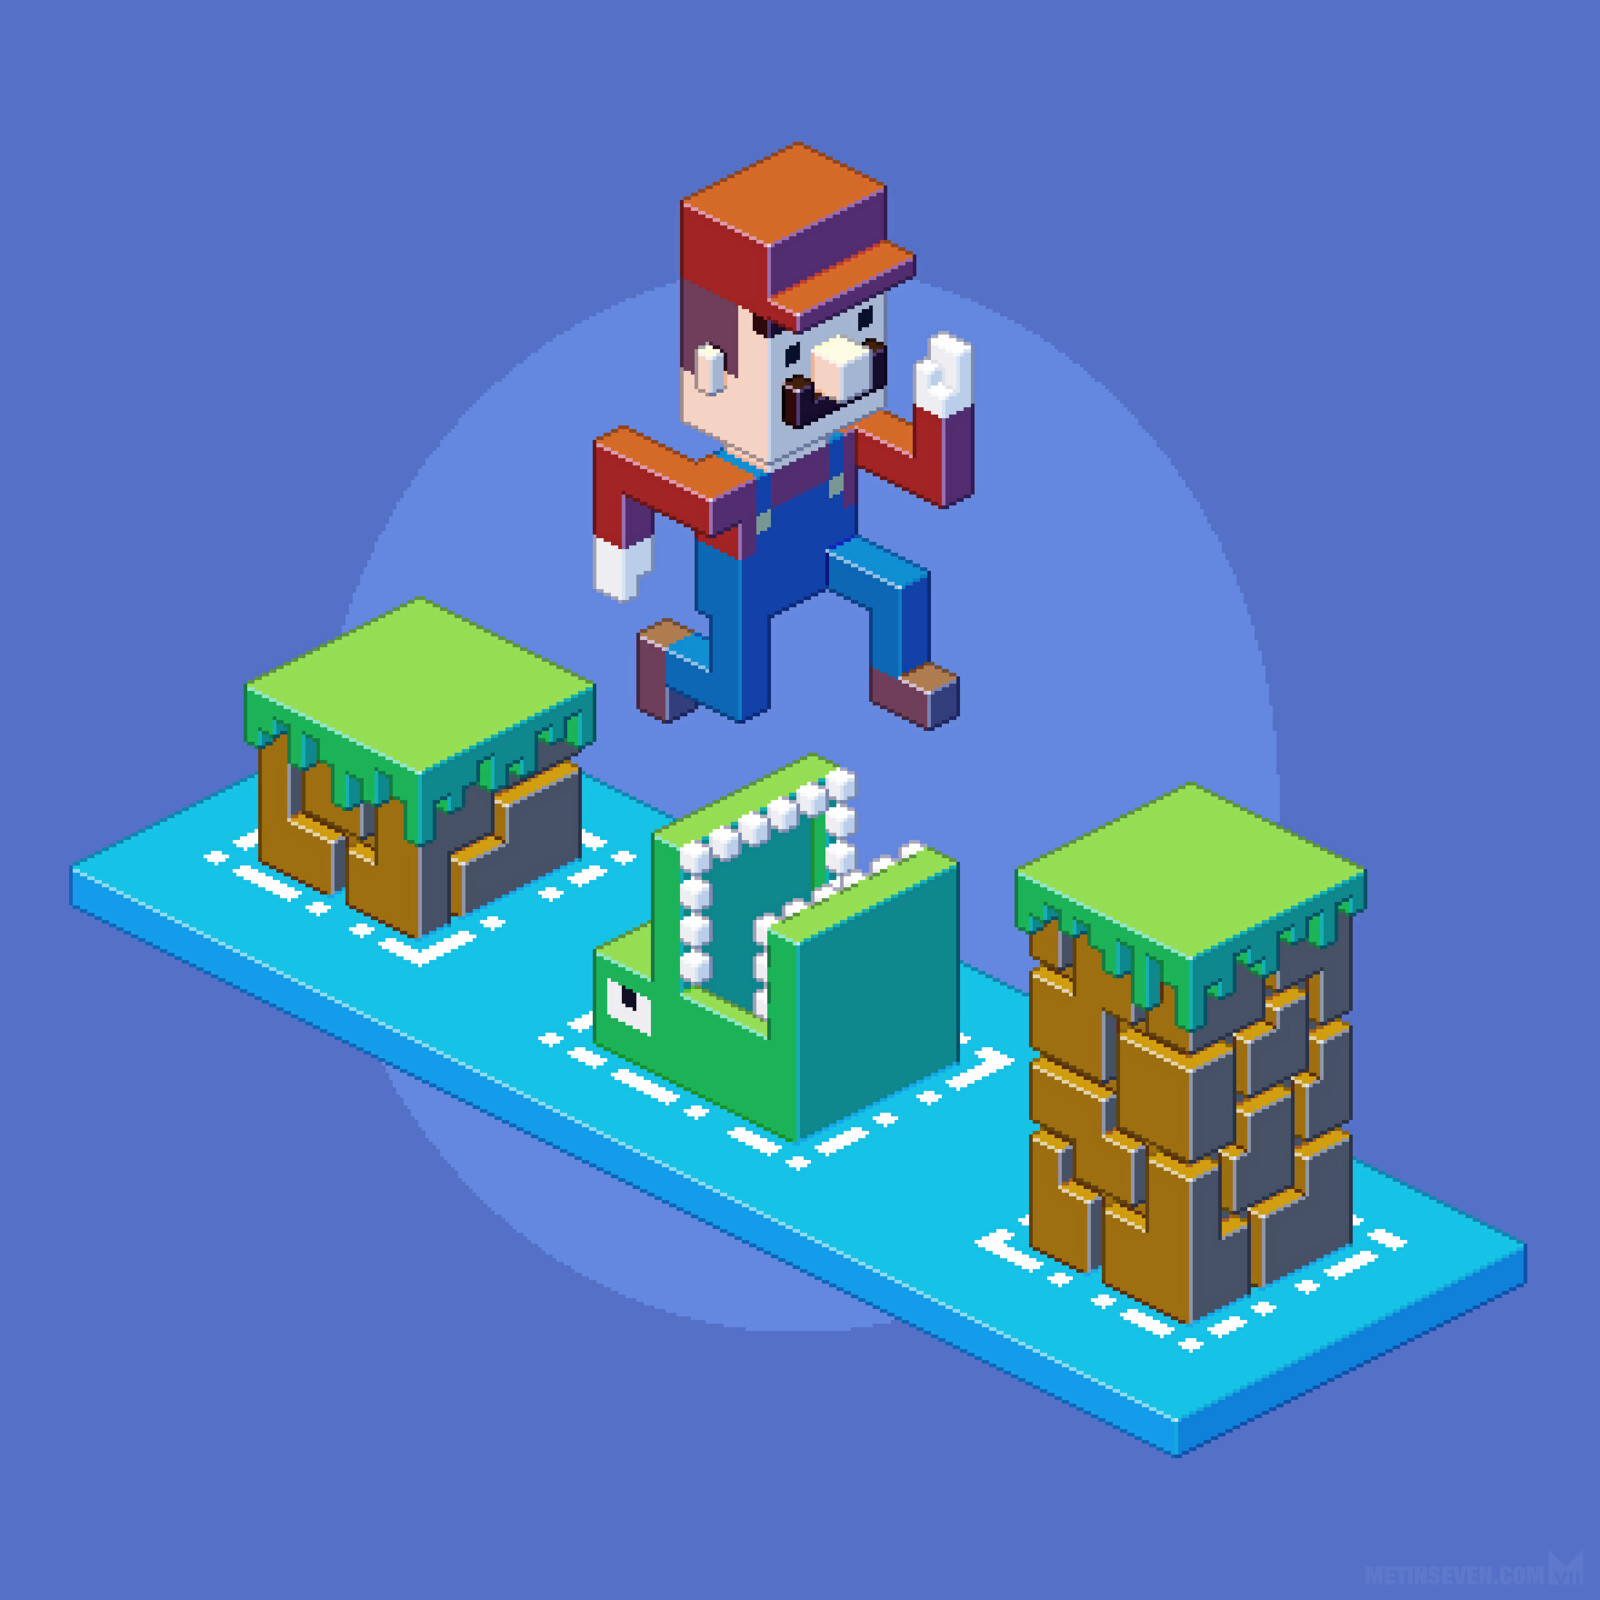 Isometric pixel illustration featuring Mario